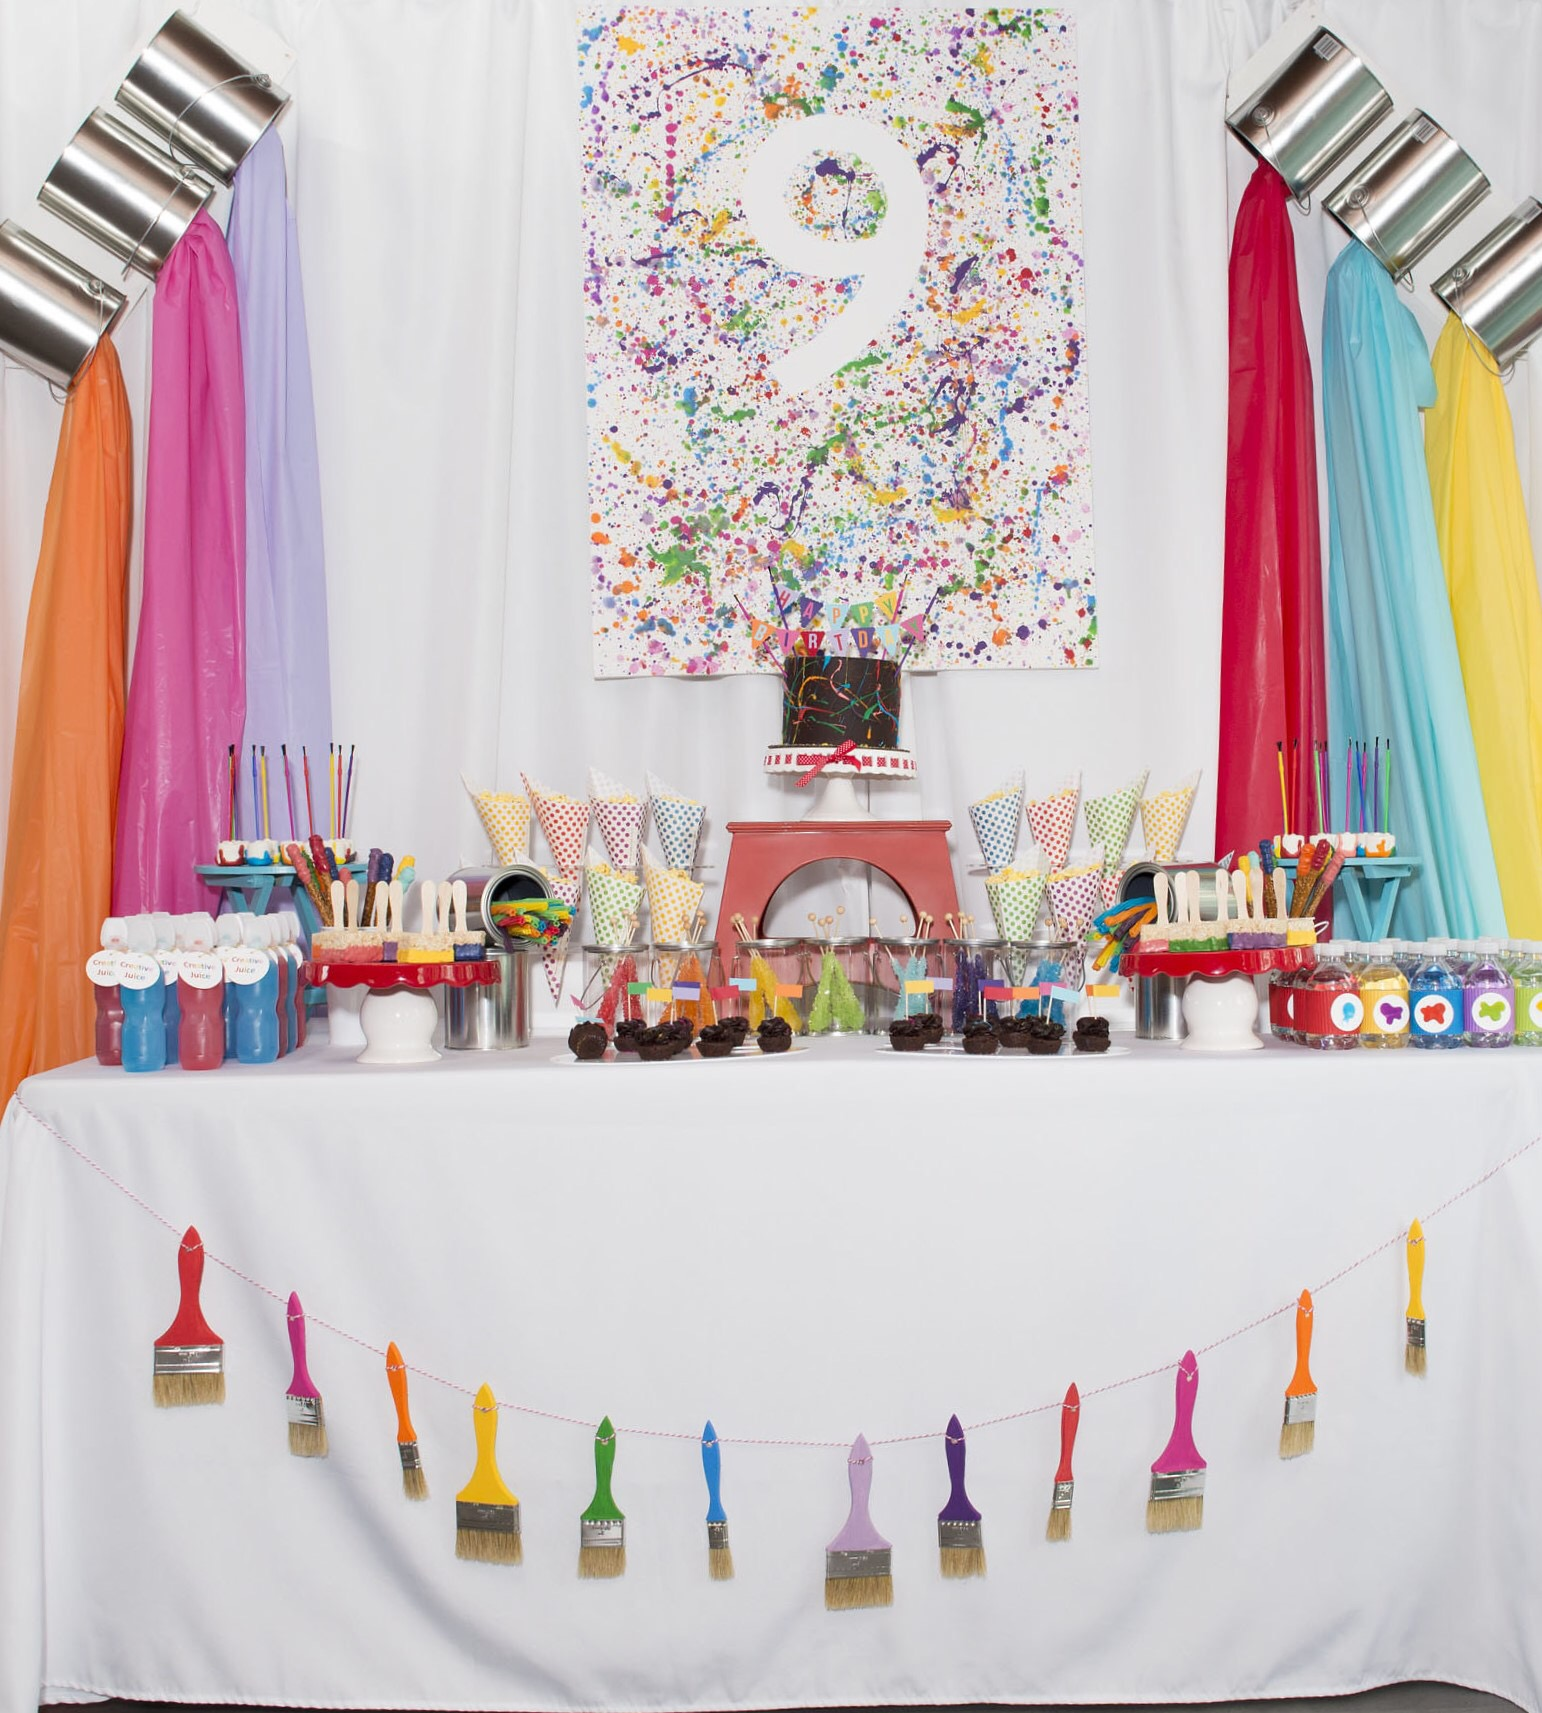 Perfectly colorful Little Artists Birthday party ideas for kids. Find out how to go all out with a rainbow colored party at a local art studio. Party styling by Mint Event Design www.minteventdesign.com #kidsparty #kidspartyideas #birthdaypartyideas #artparty #rainbowparty